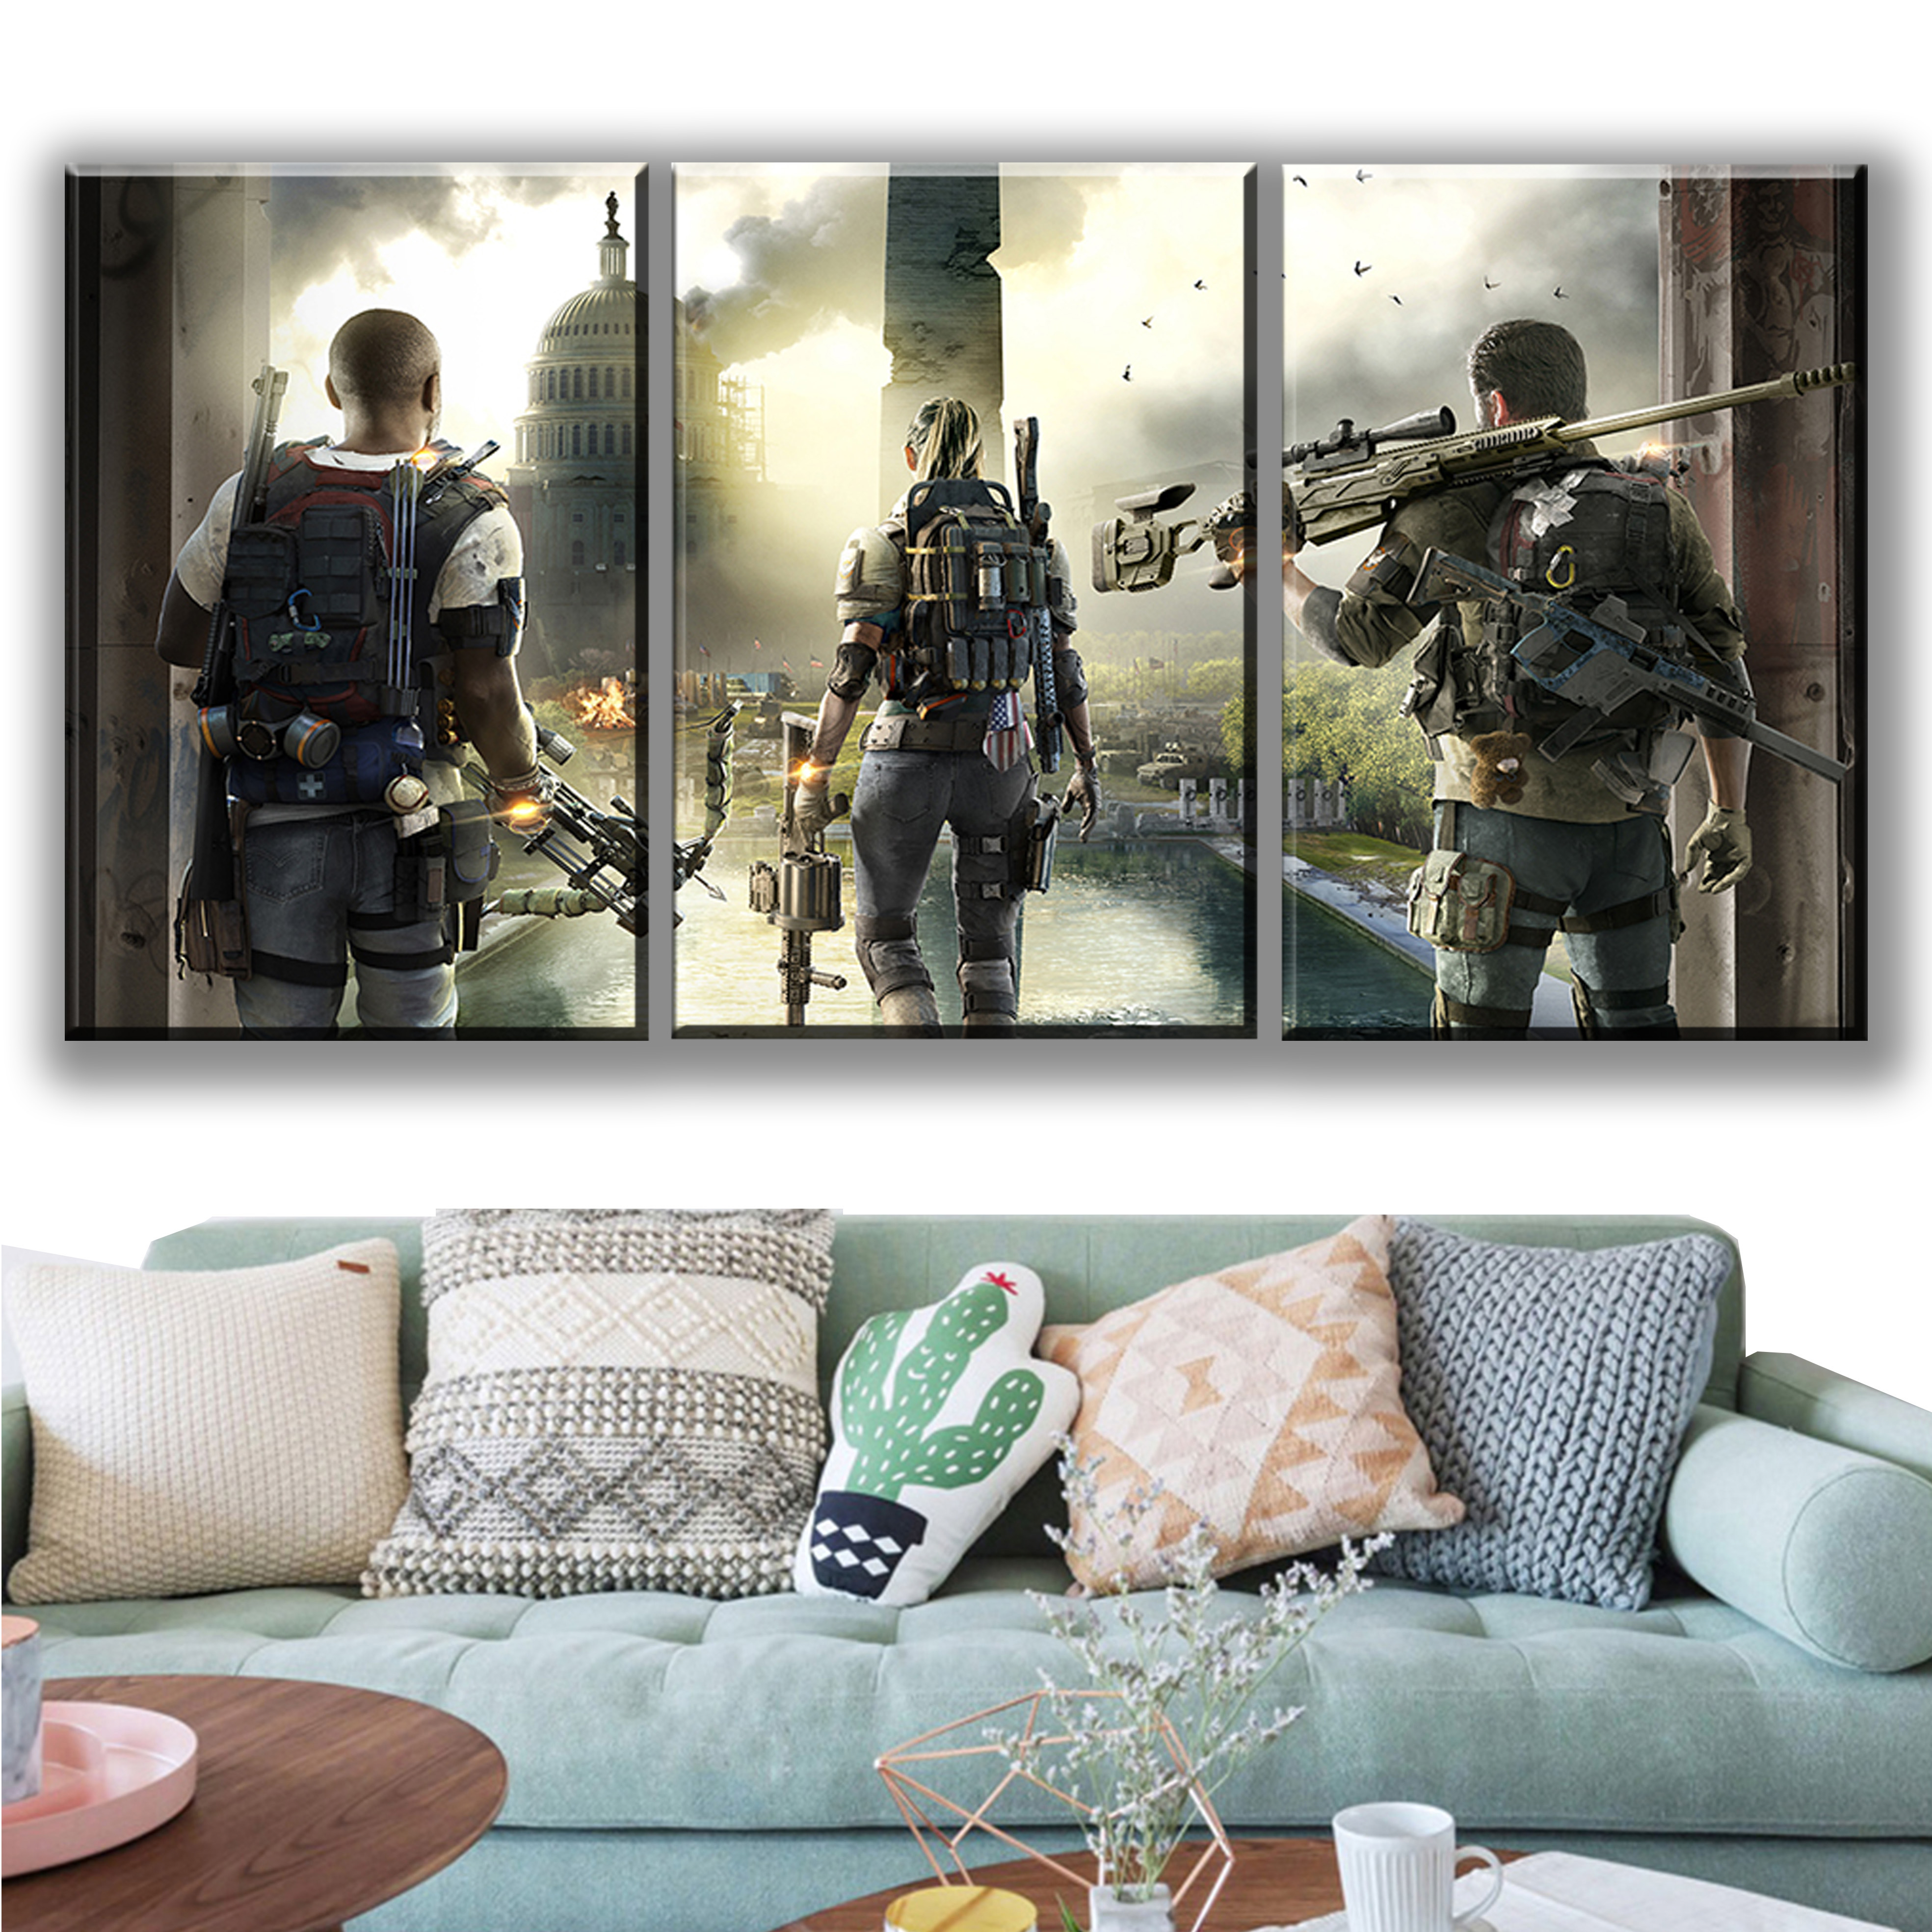 3 Piece Tom Clancys The Division 2 Game Poster HD Pictures Canvas Art Wall Modern Printing Paintings for Home Decor